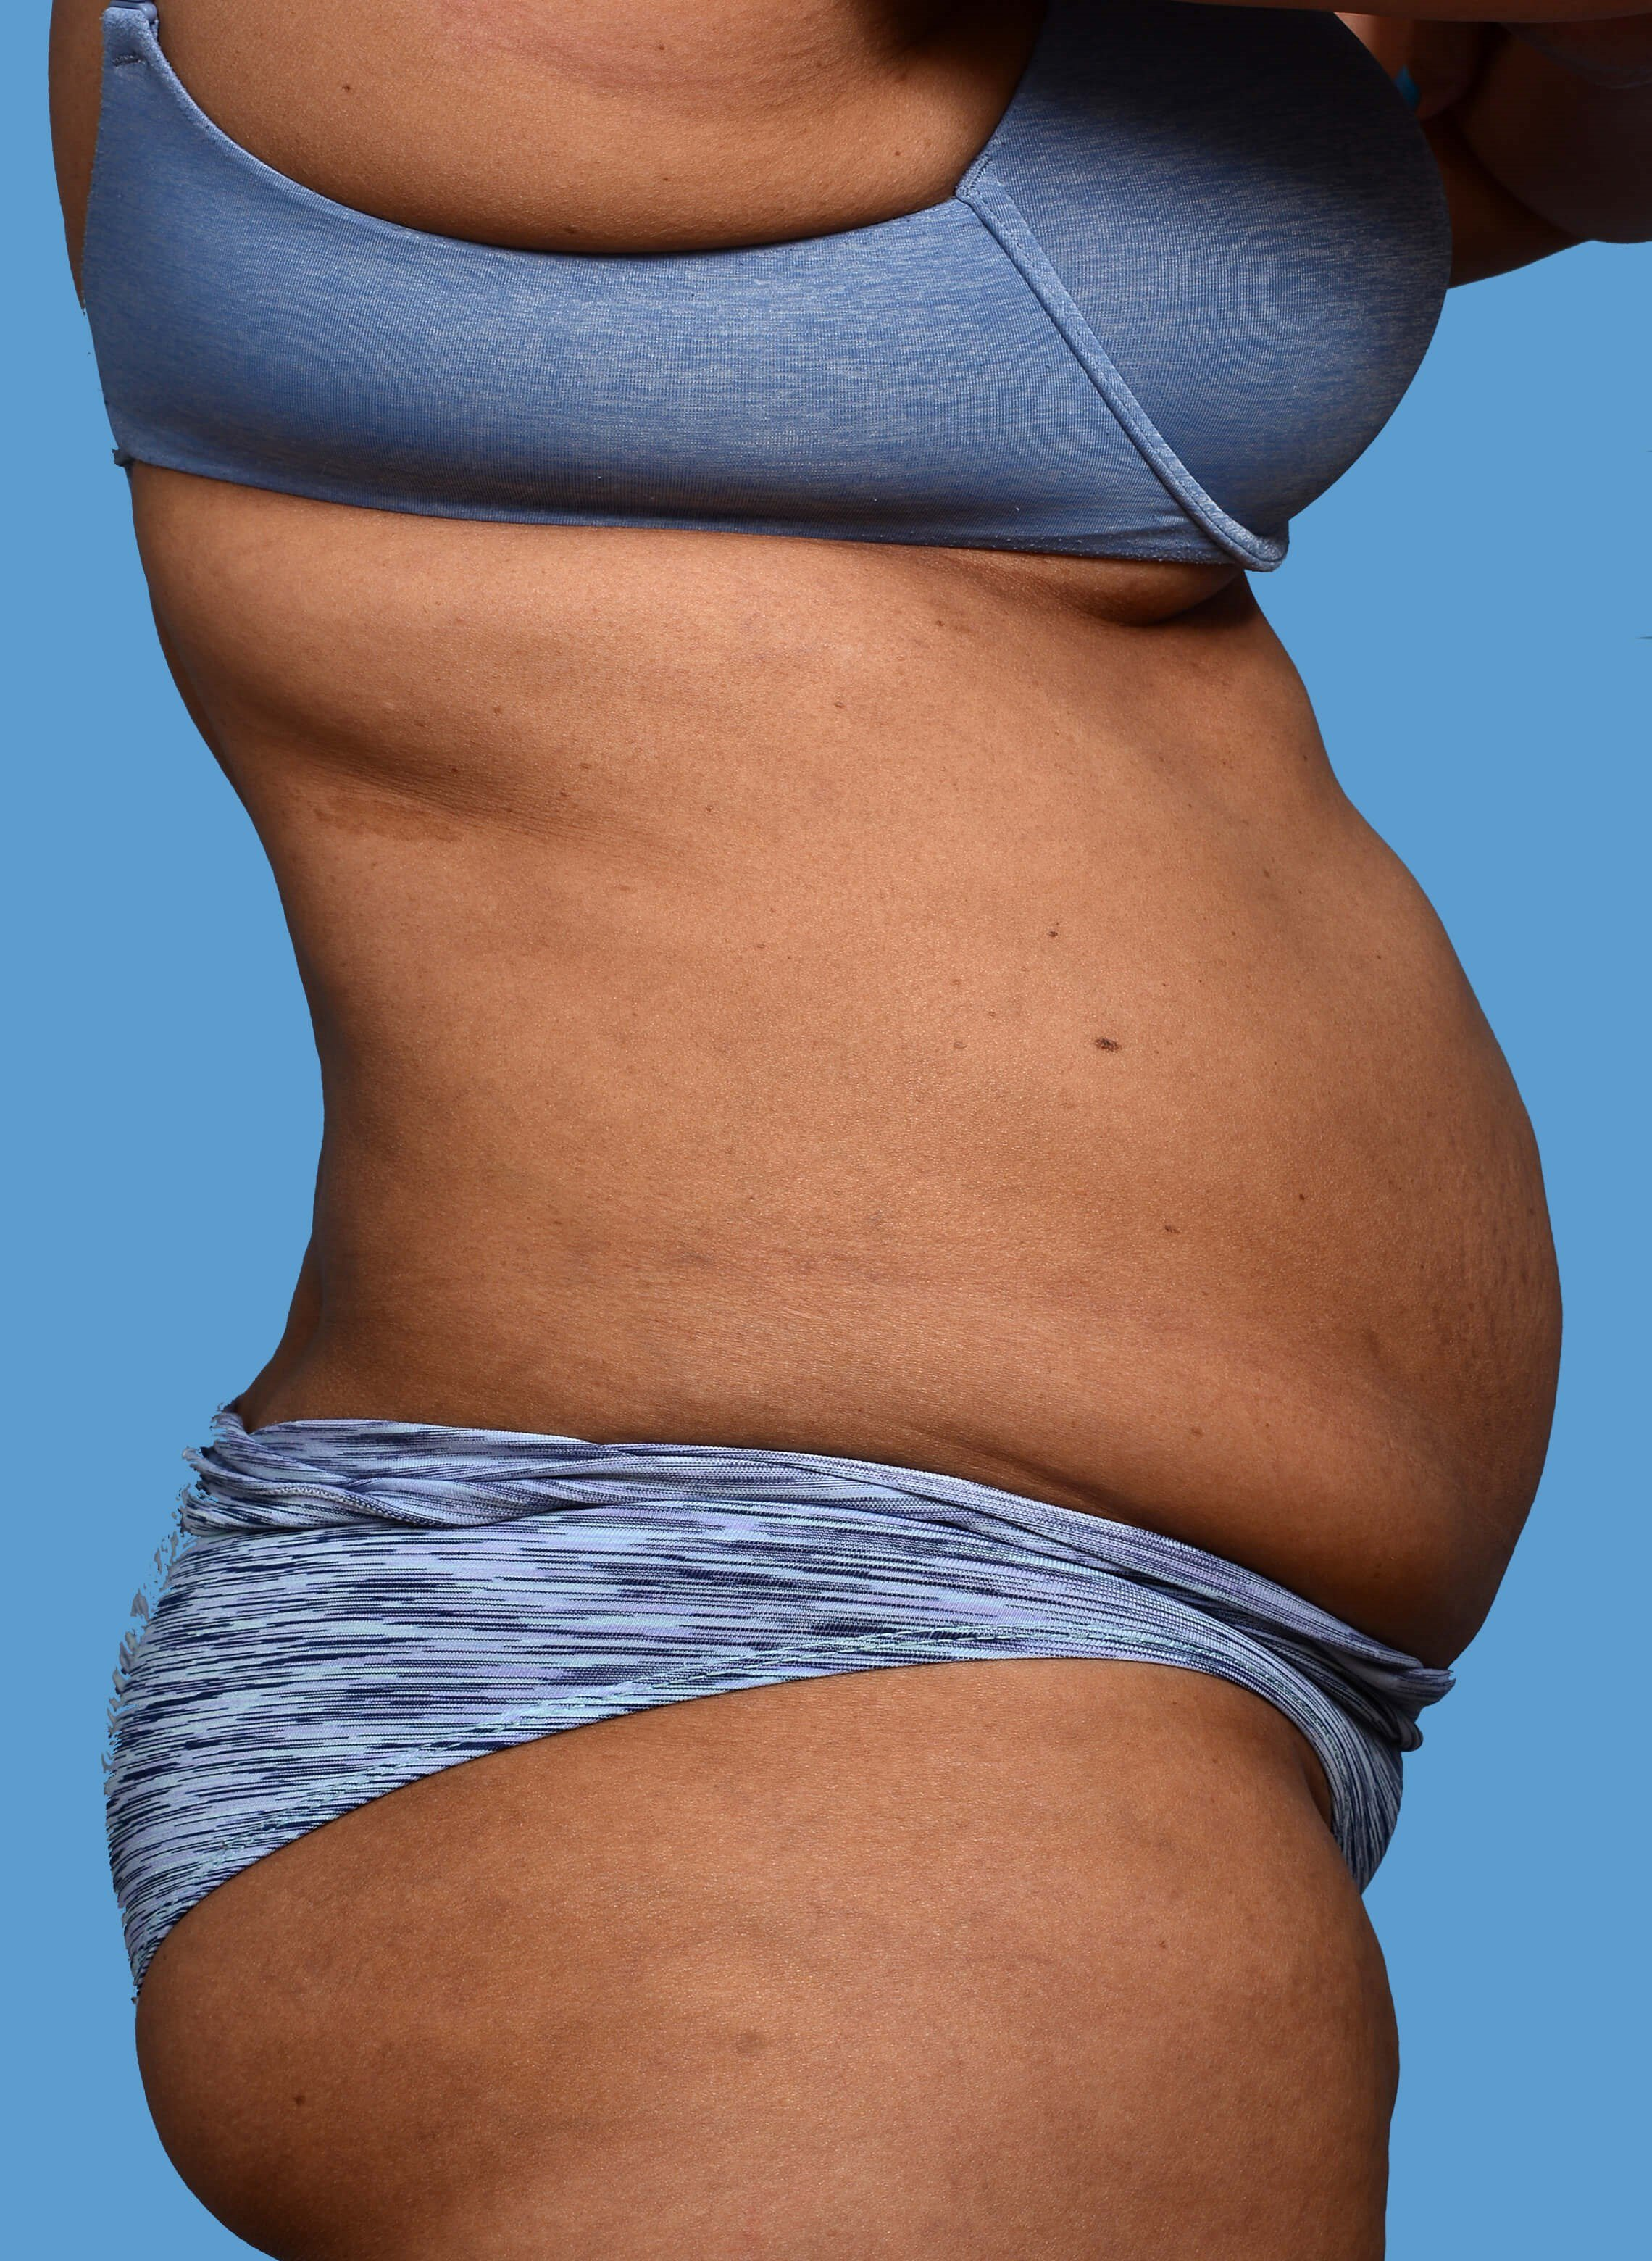 CoolSculpting - Right View After CoolSculpting Treatment